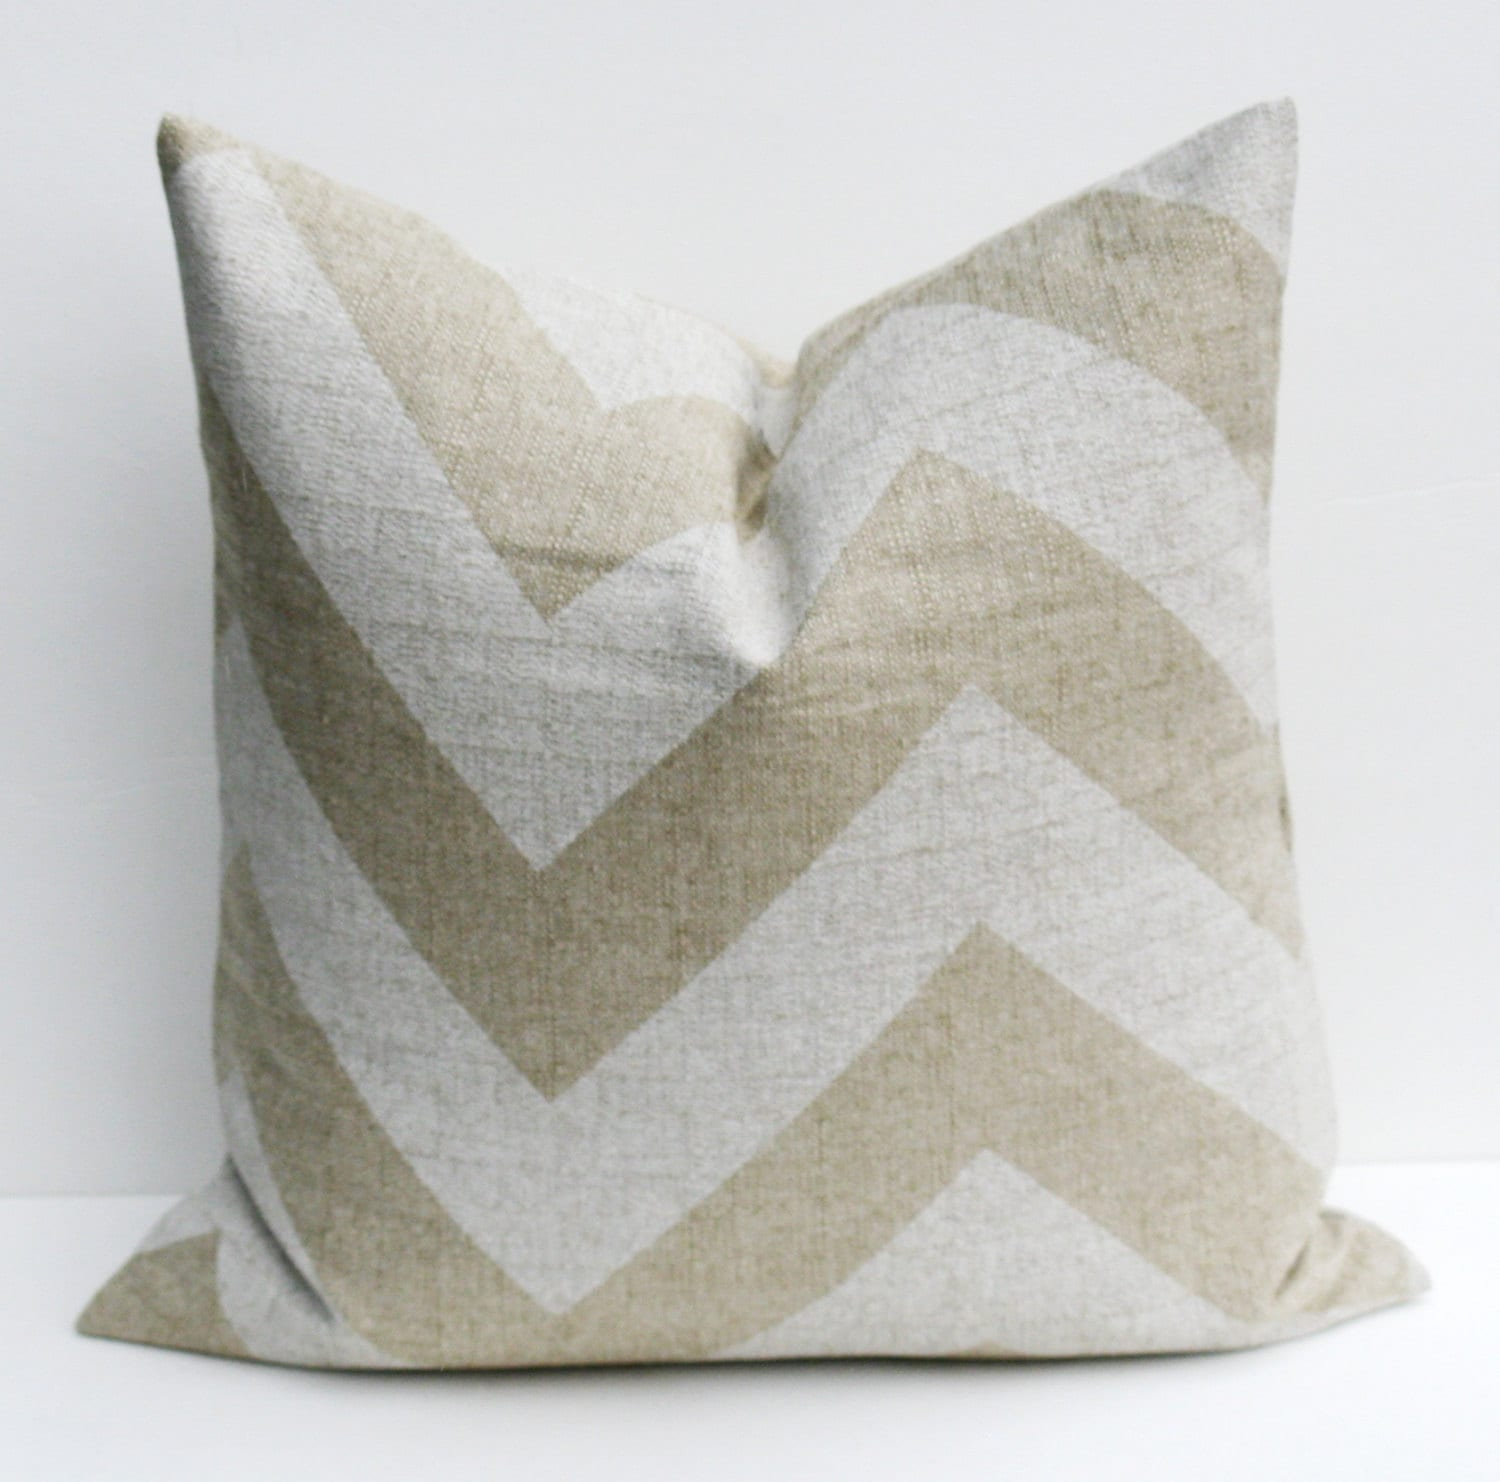 How To Make A Burlap Throw Pillow : Burlap Pillows Throw Pillow Covers Chevron Pillow by EastAndNest